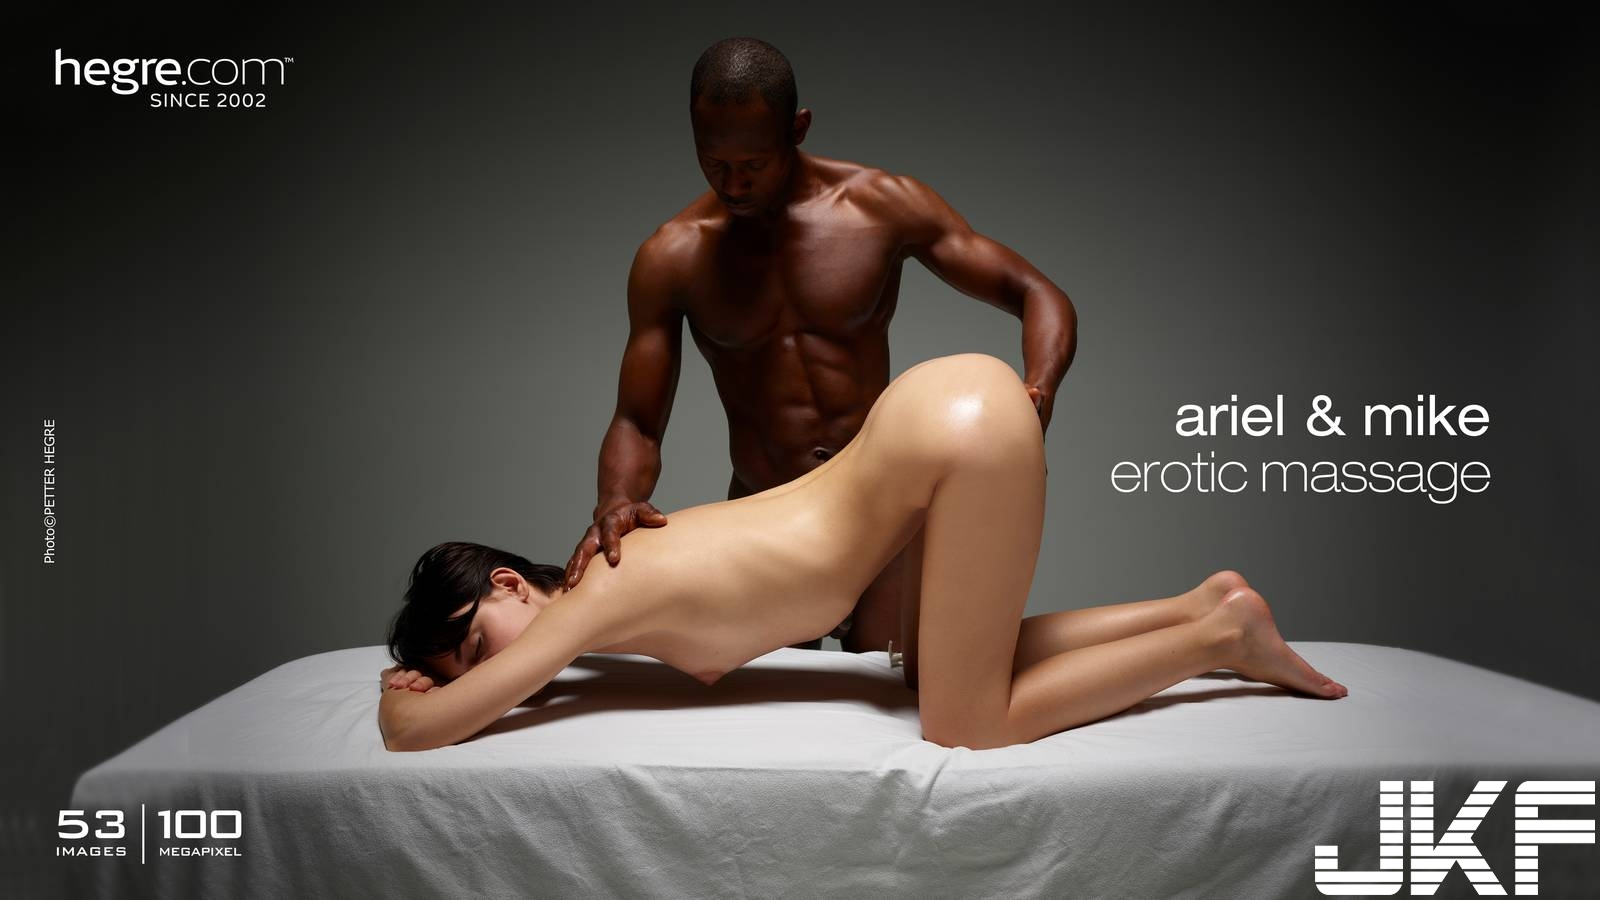 ariel-and-mike-erotic-massage-board-image-1600x.jpg